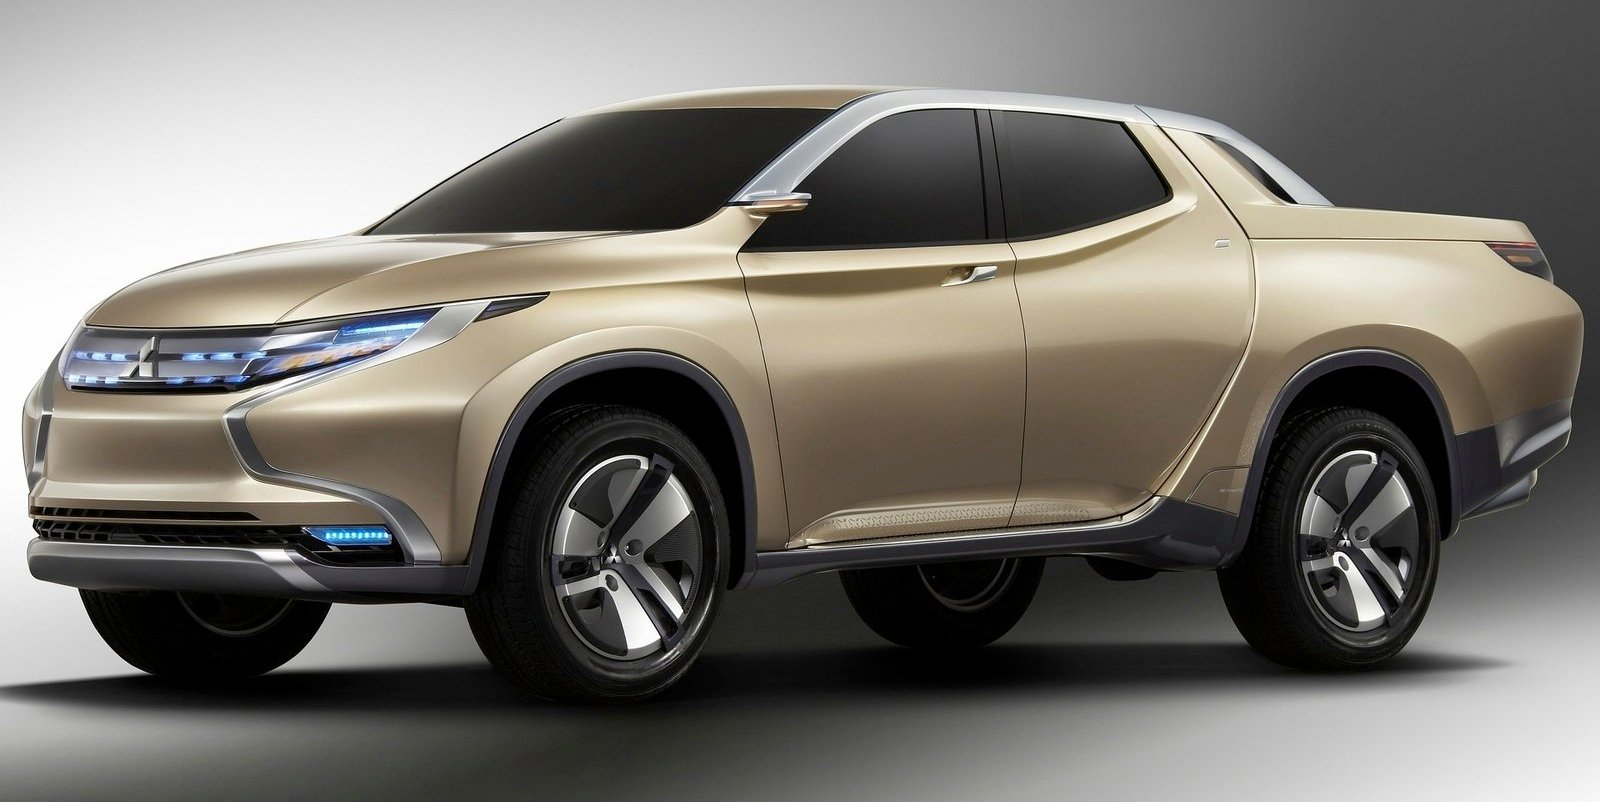 Fiat To Offer Its Own Version Of Mitsubishi Triton In 2016